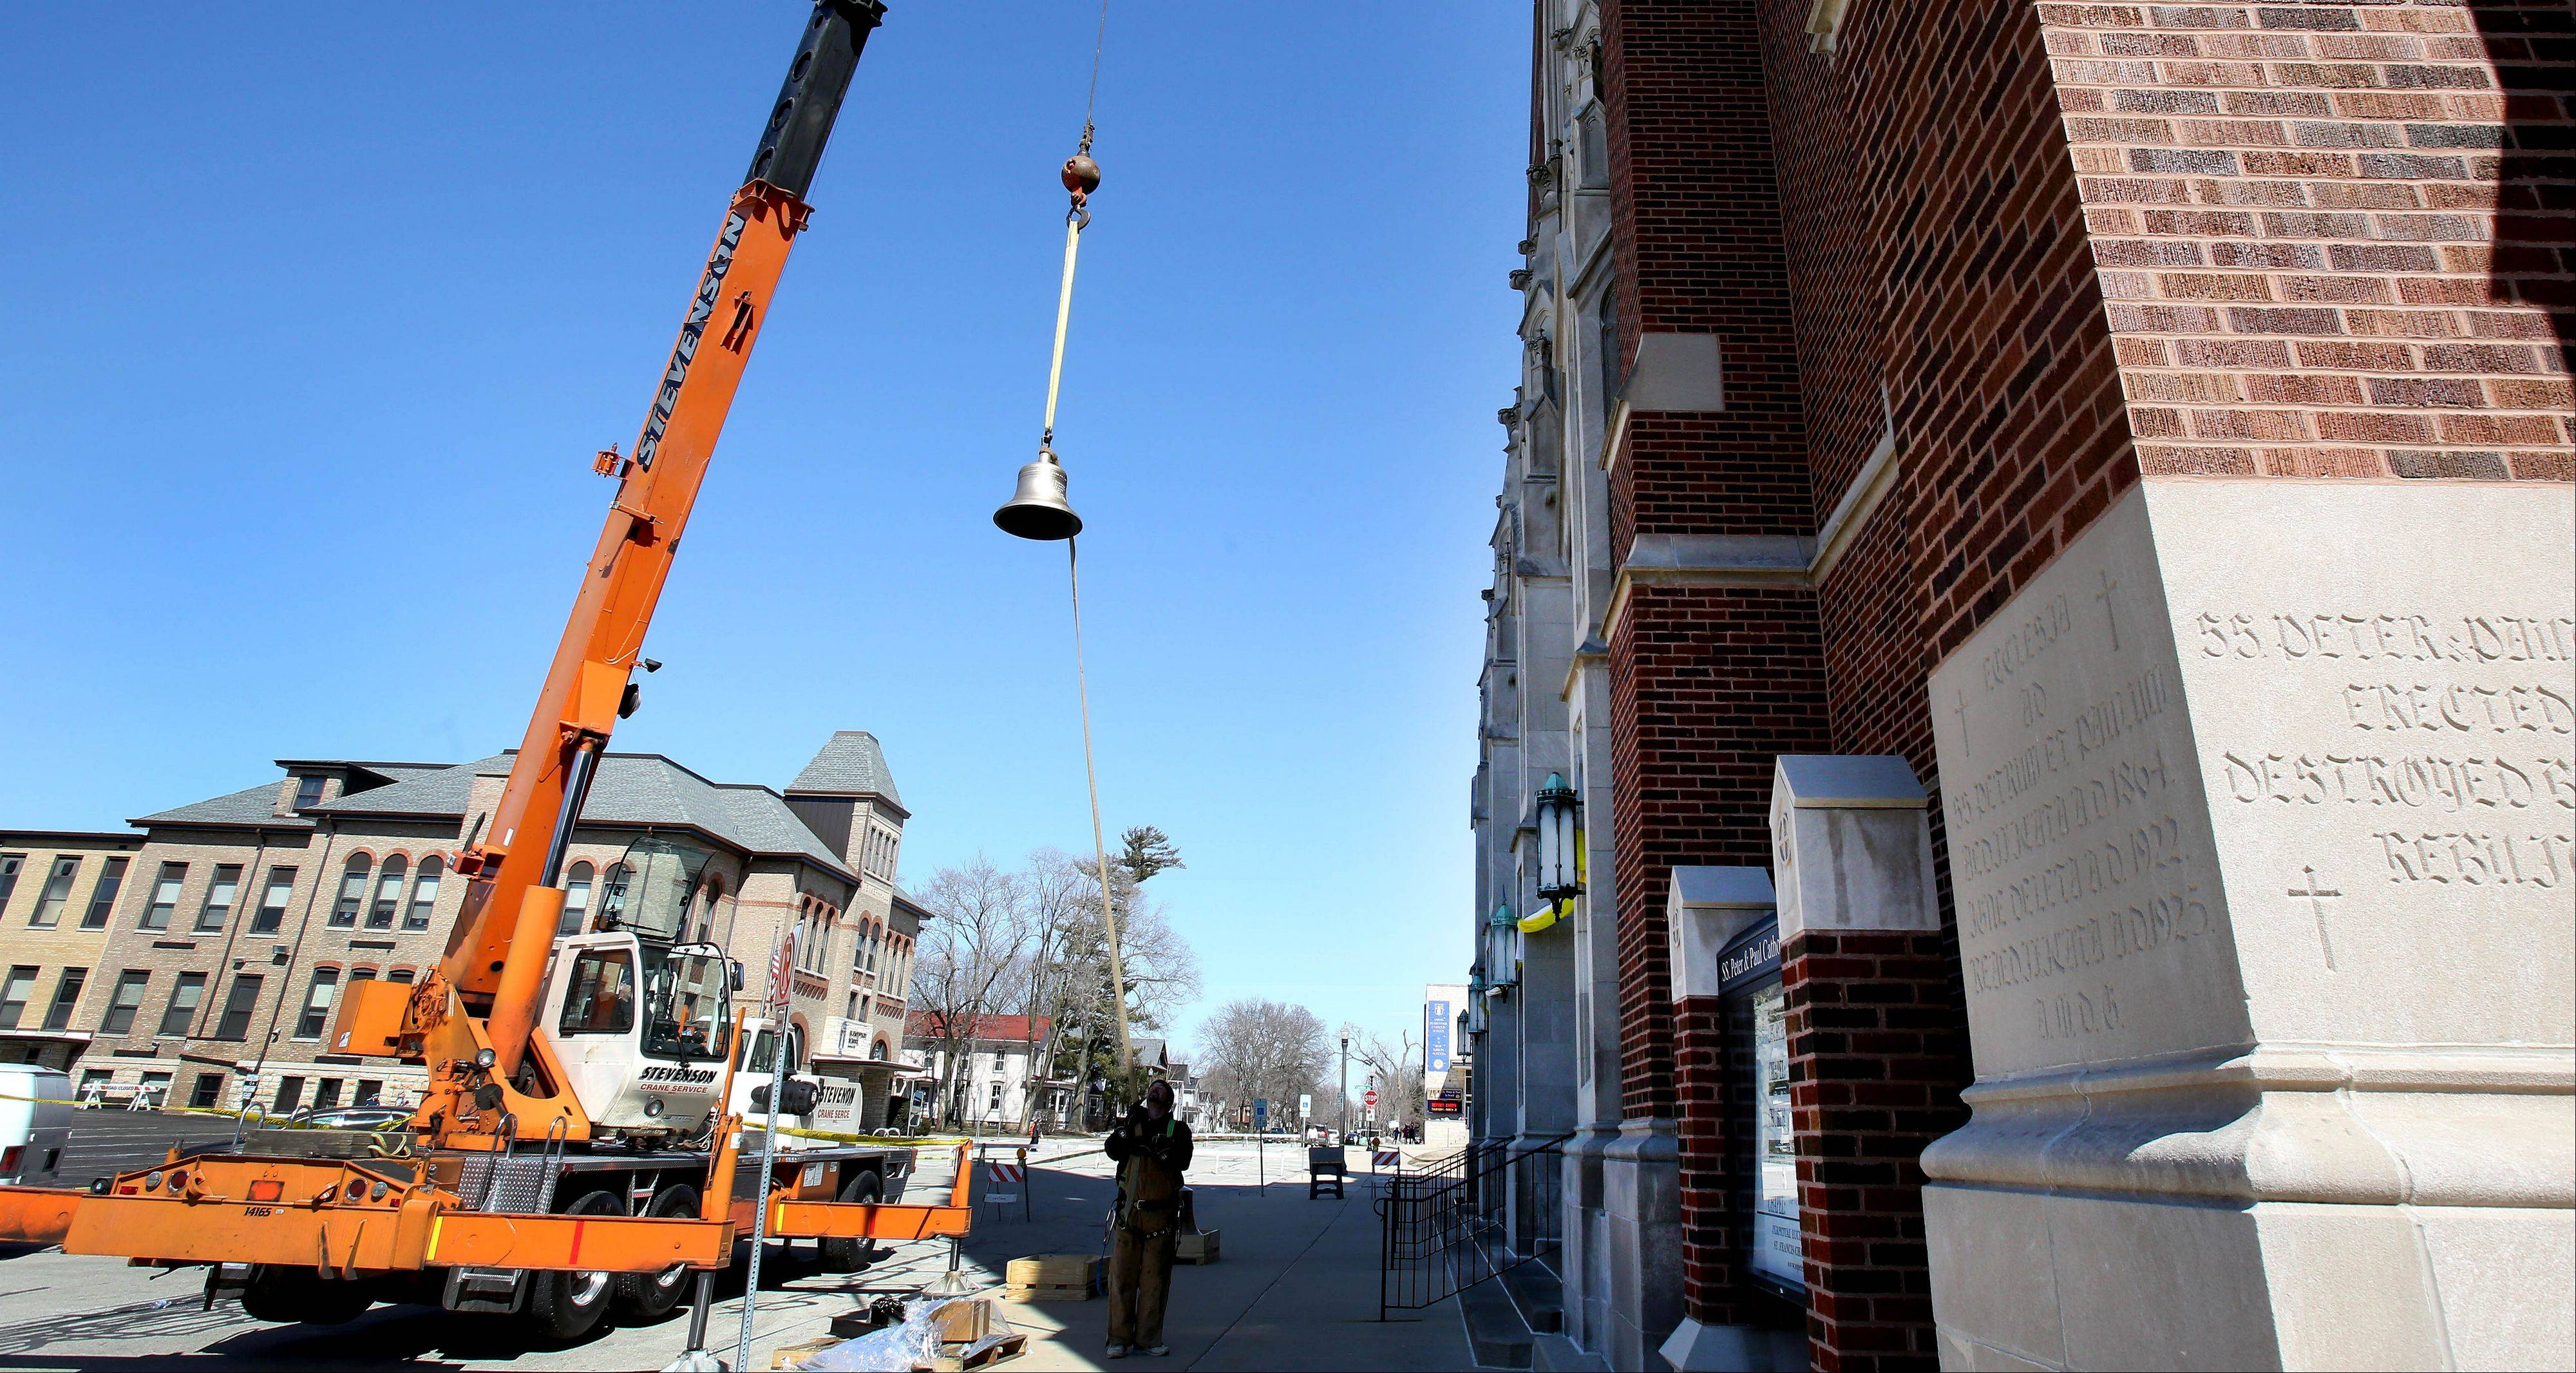 Crews hoist a bell into the tower at Ss. Peter and Paul Catholic Church in Naperville. The 167-year-old church has restored two of its bells and added a third. They'll all ring together for the first time over Easter weekend.